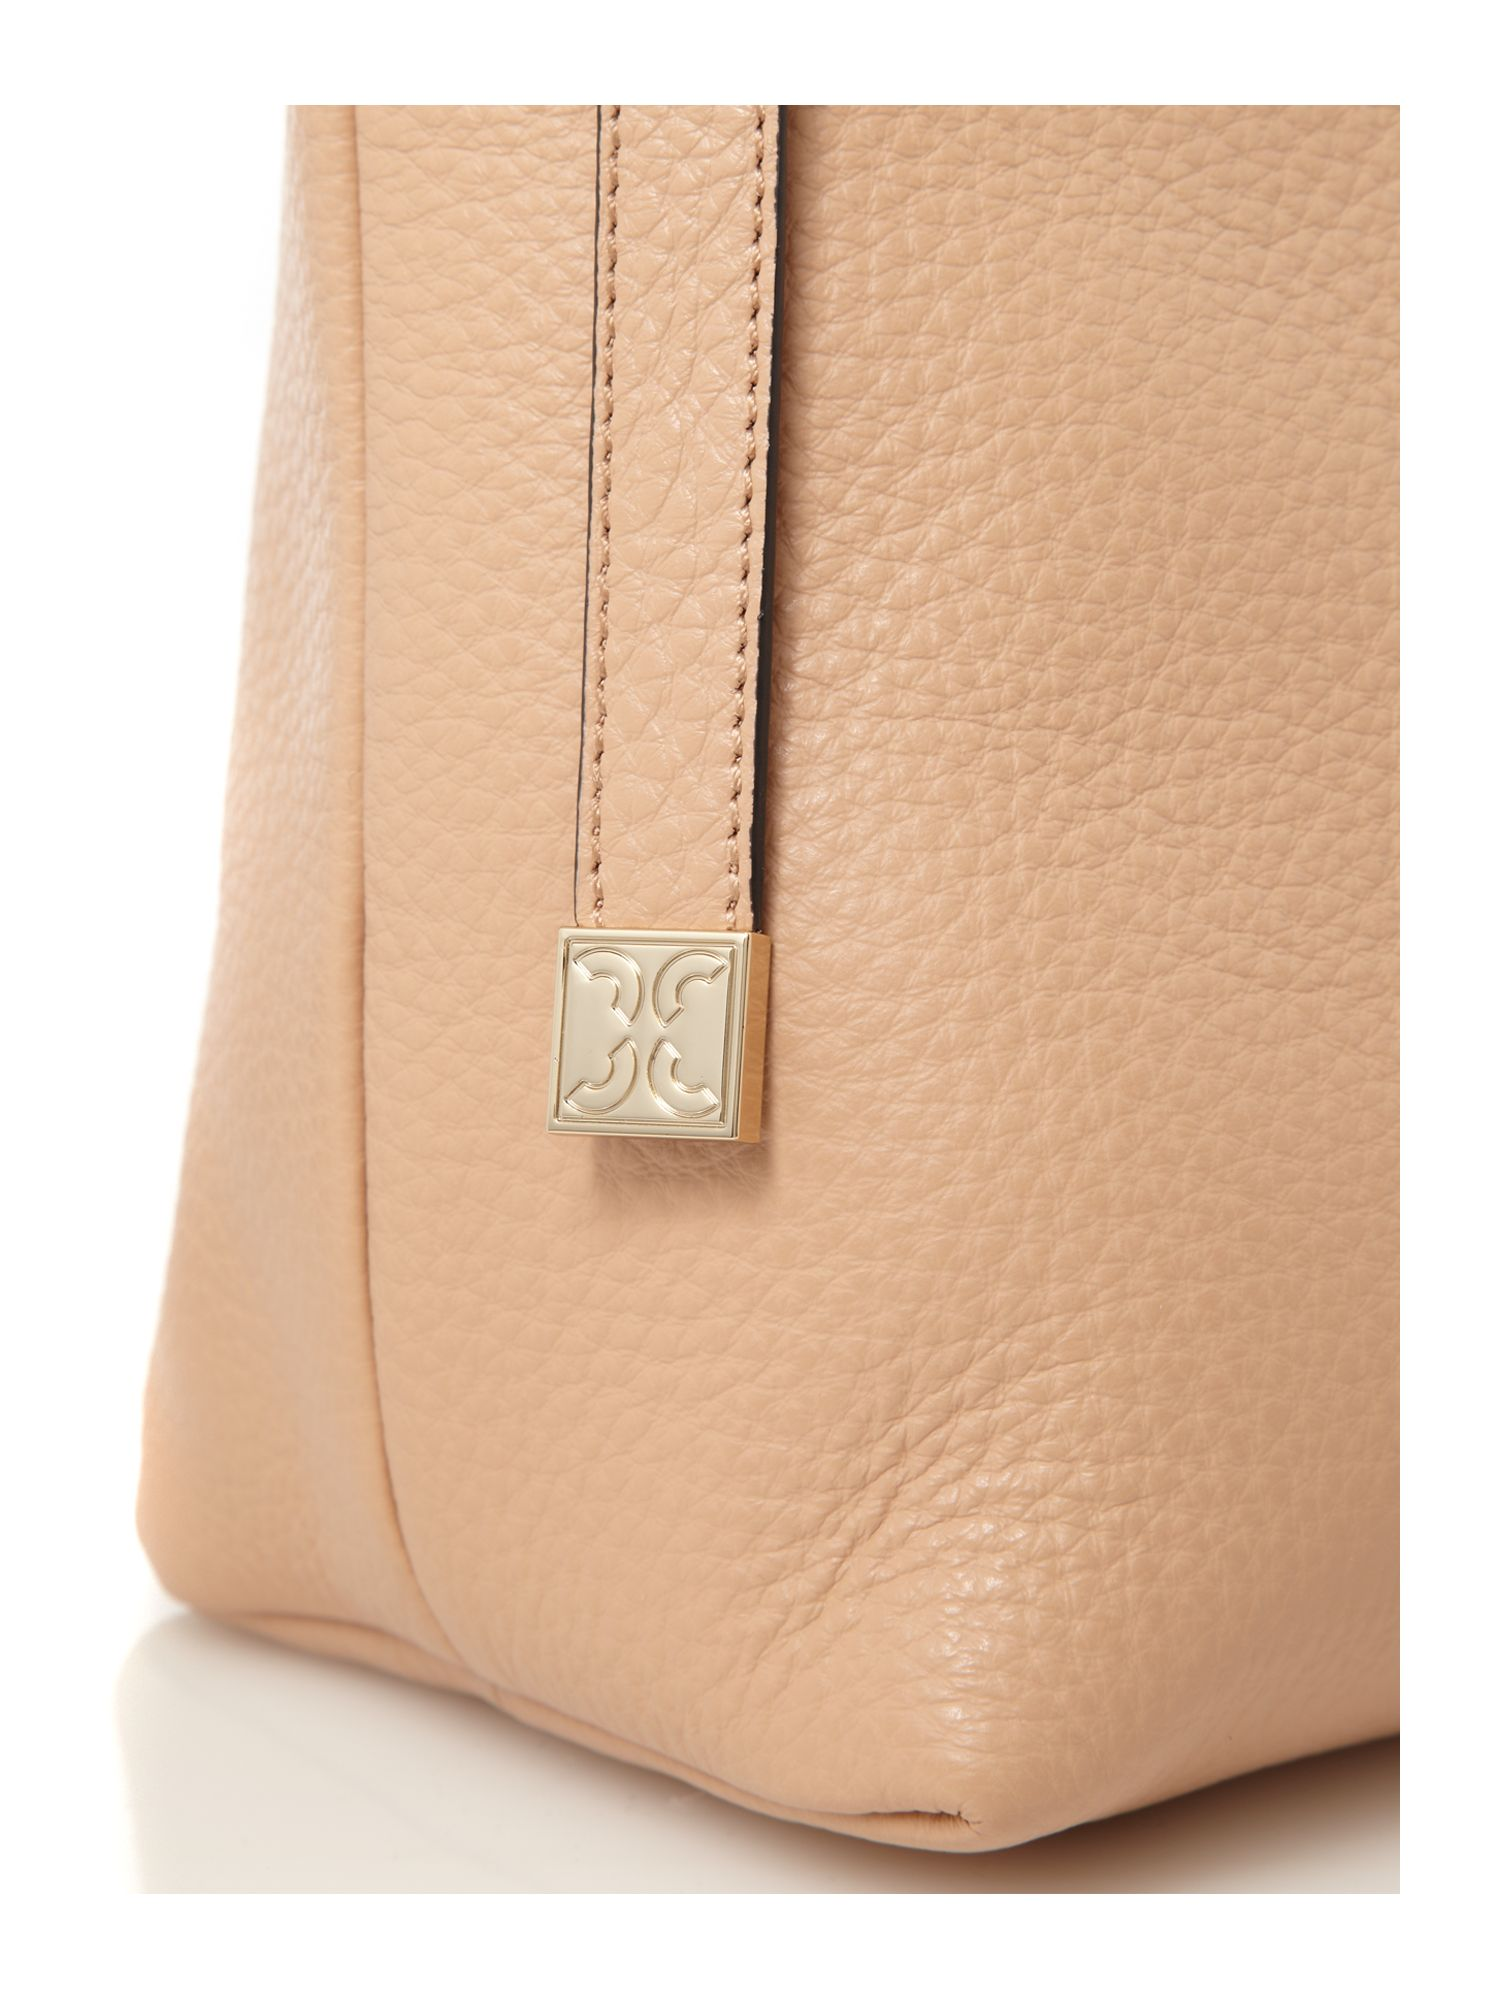 Coccinelle Vittoria Large Crossbody Bag in Natural